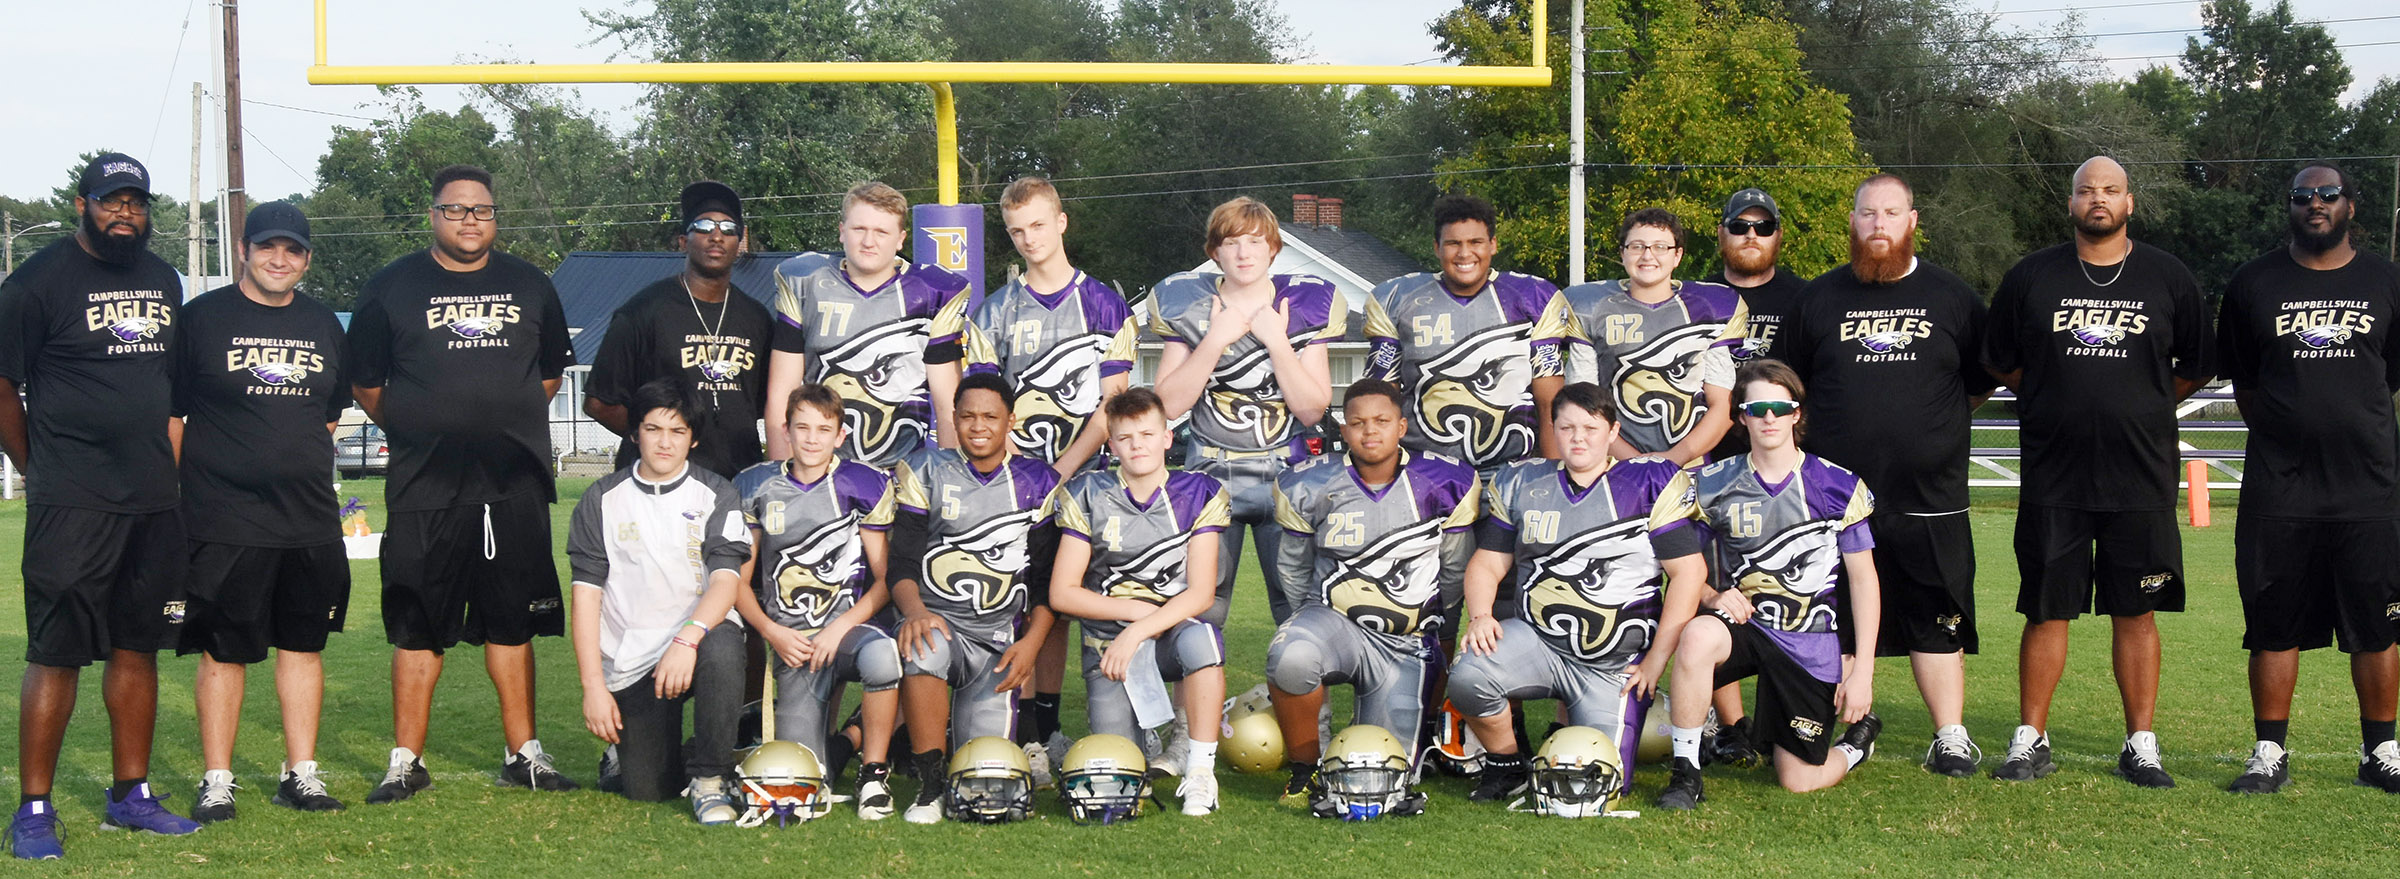 CMS football team honored its eighth-grade players on Tuesday, Sept. 18. They are, from left, front, Cayden Corona, Camren Vicari, Deondre Weathers, Konner Forbis, Deondre Weathers, Aiden Humphress and Seth Hash. Back, Levi Dicken, Logan Marples, Isaiah Caffee, J.T. Washington and Cameron Mahan. They are pictured with coaches, from left, Will Griffin, Tommy Allen, Bronson Gowdy, John Gholston, Isaiah Perkins, Stephen Tucker, Aaron Webb and Shumari Bridgewater.